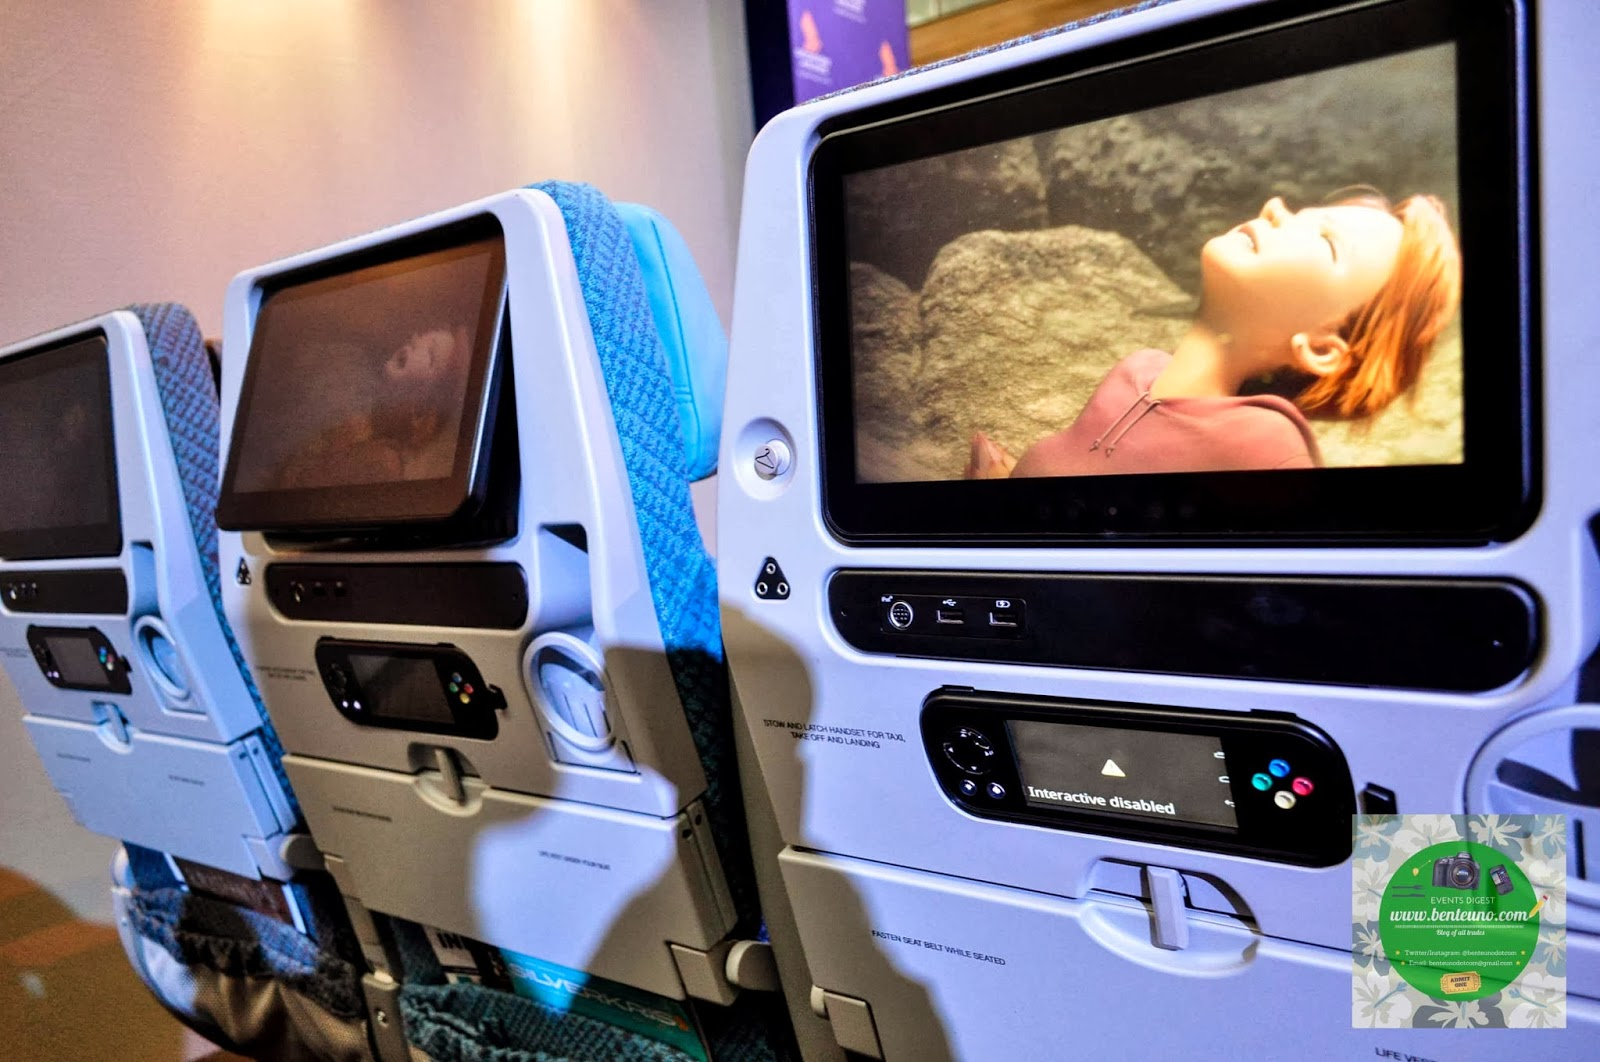 KrisWorld In-Flight Entertainment System on Economy Class of SingAir